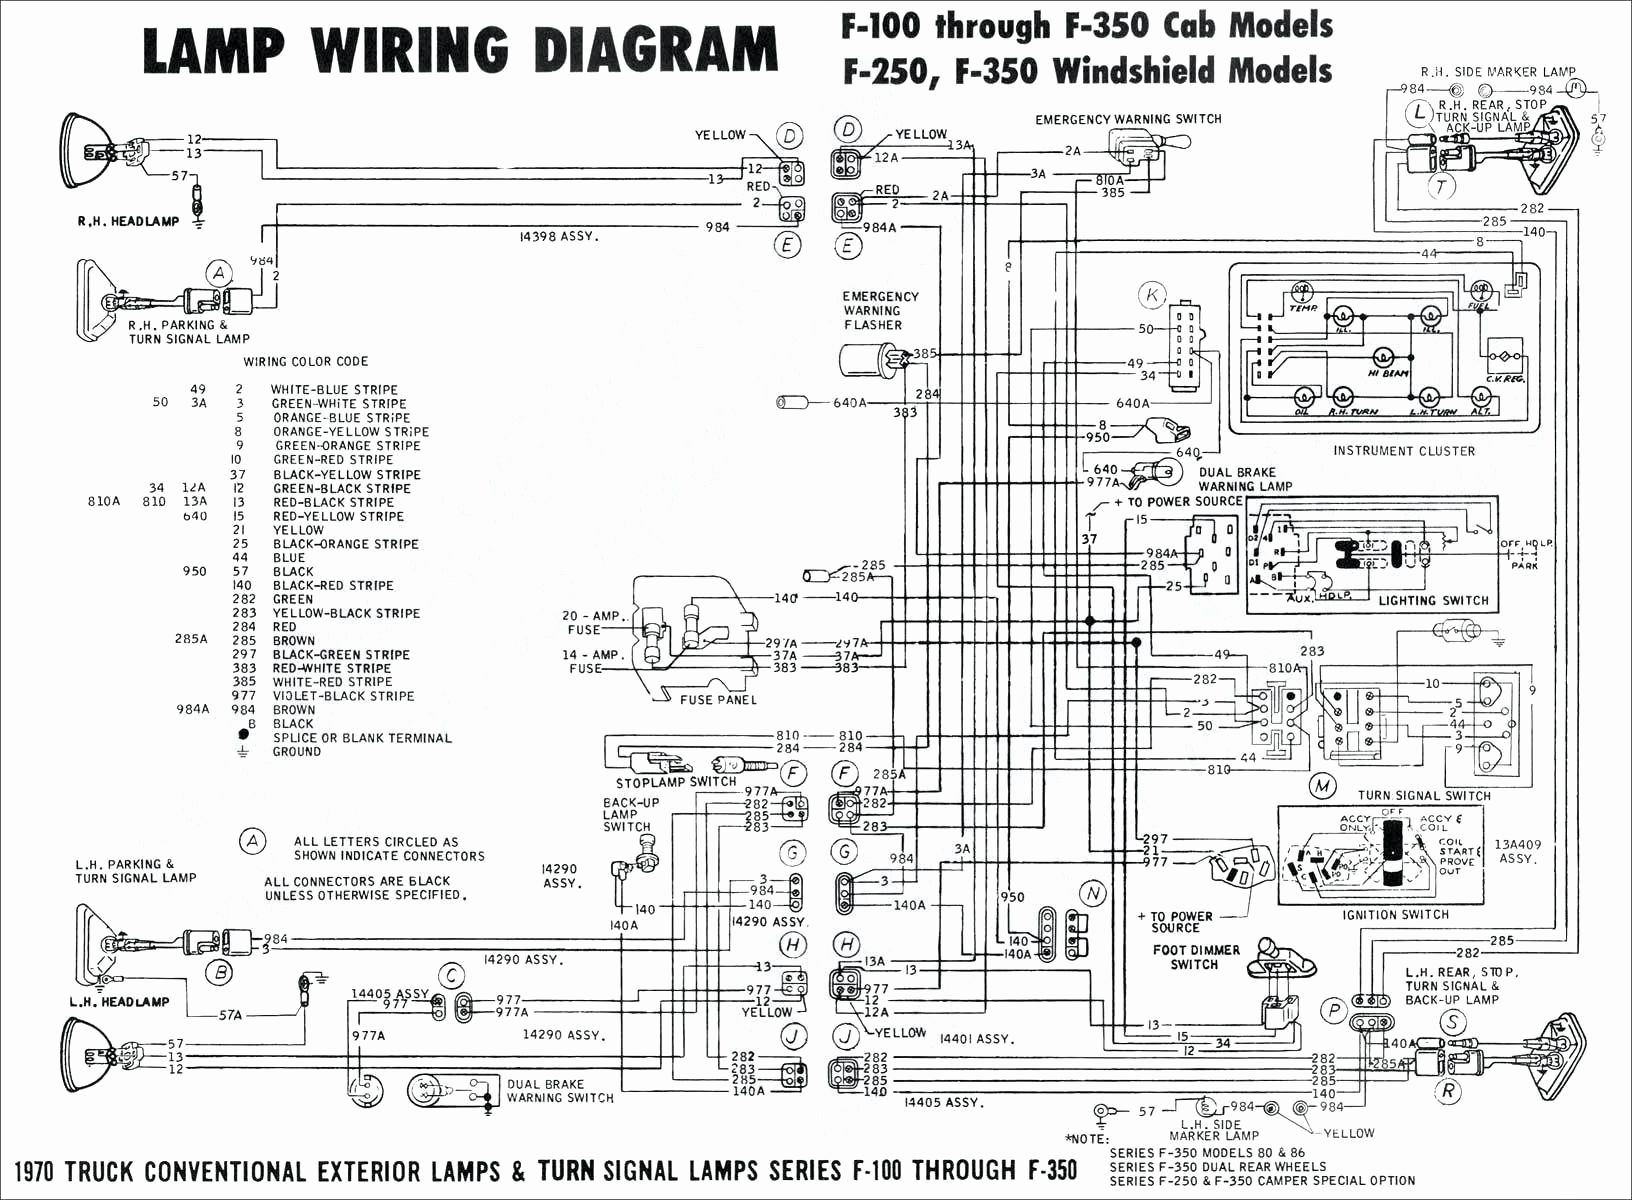 Gm Choke Wiring | Wiring Diagram - 7 Pin Trailer Wiring Diagram Gmc